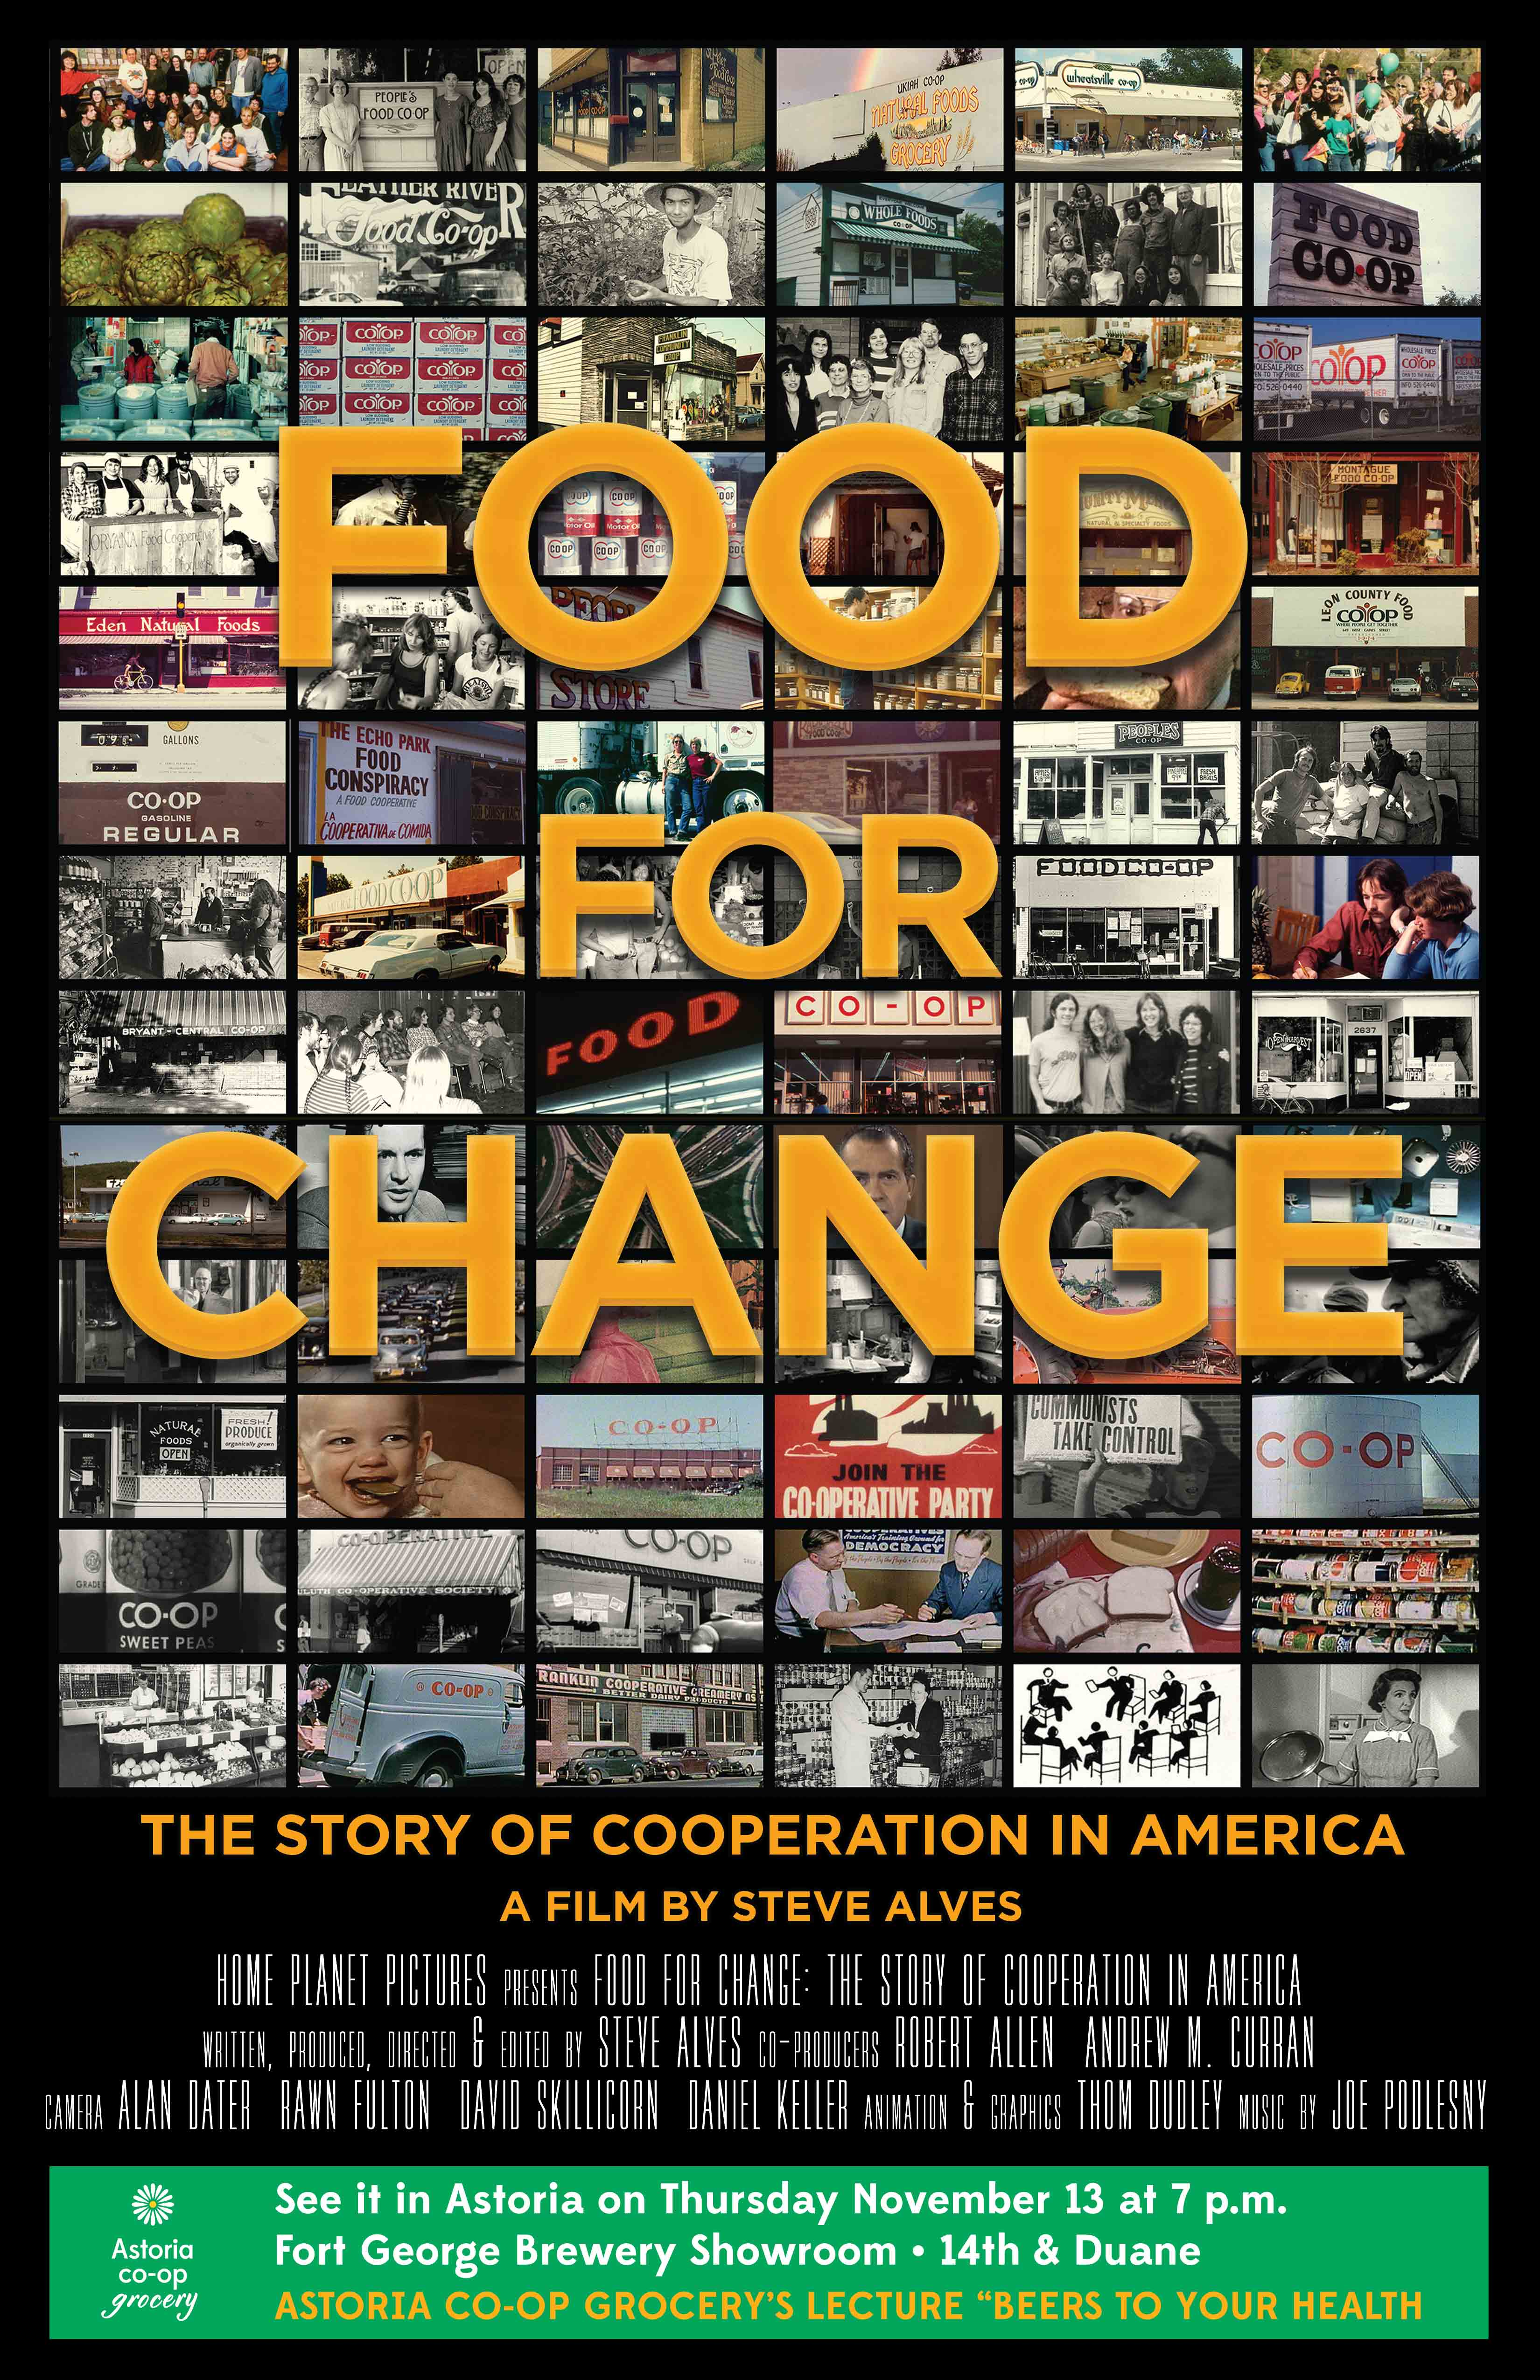 Final Food for Change Poster